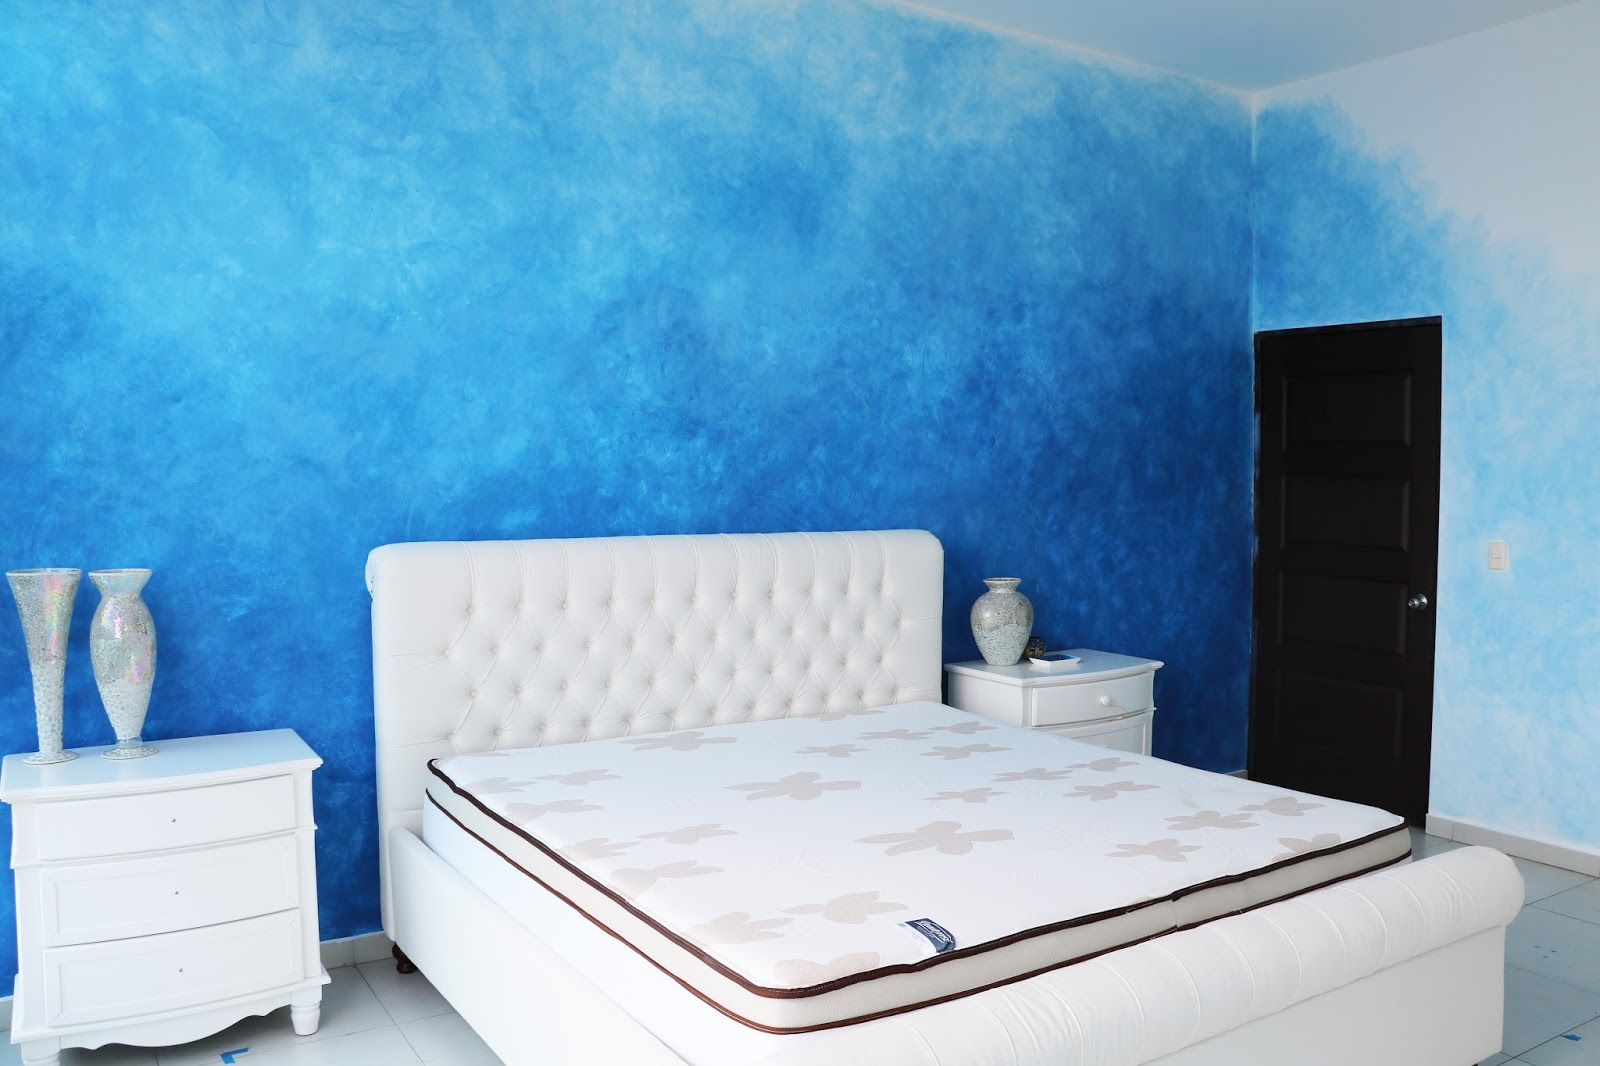 Blue ombre wall tutorial - Click through for step by step!